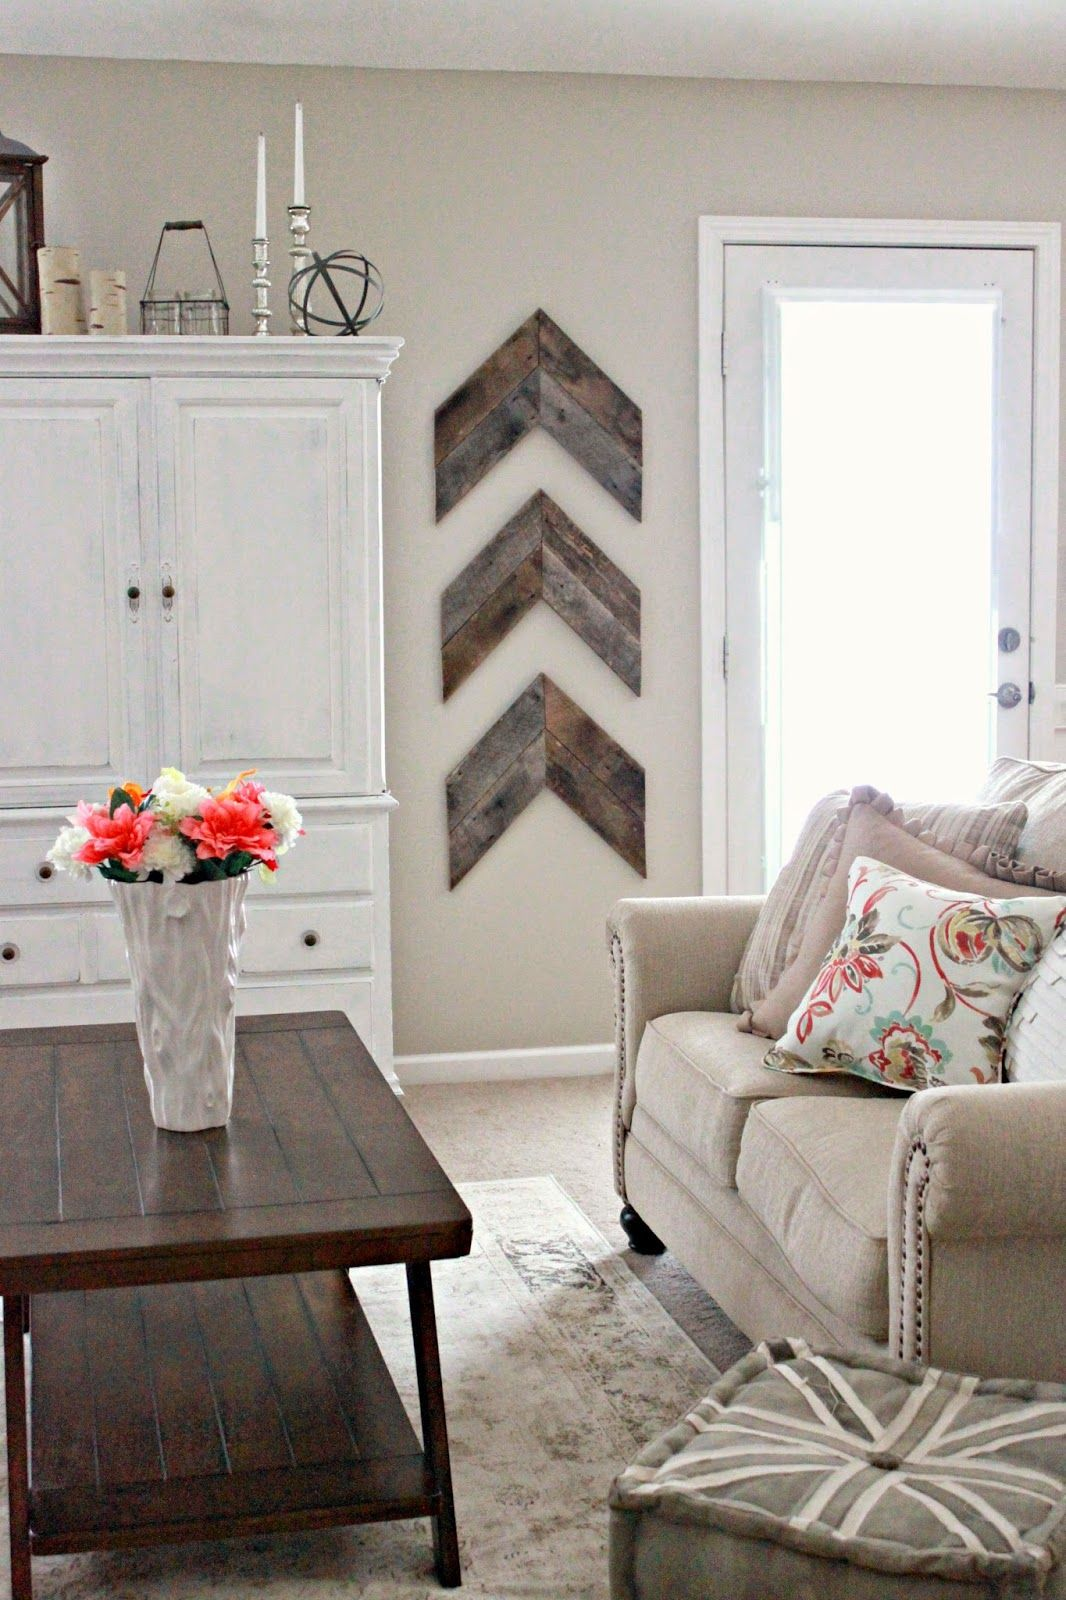 Understand woodworking plans and designs in homedecorating